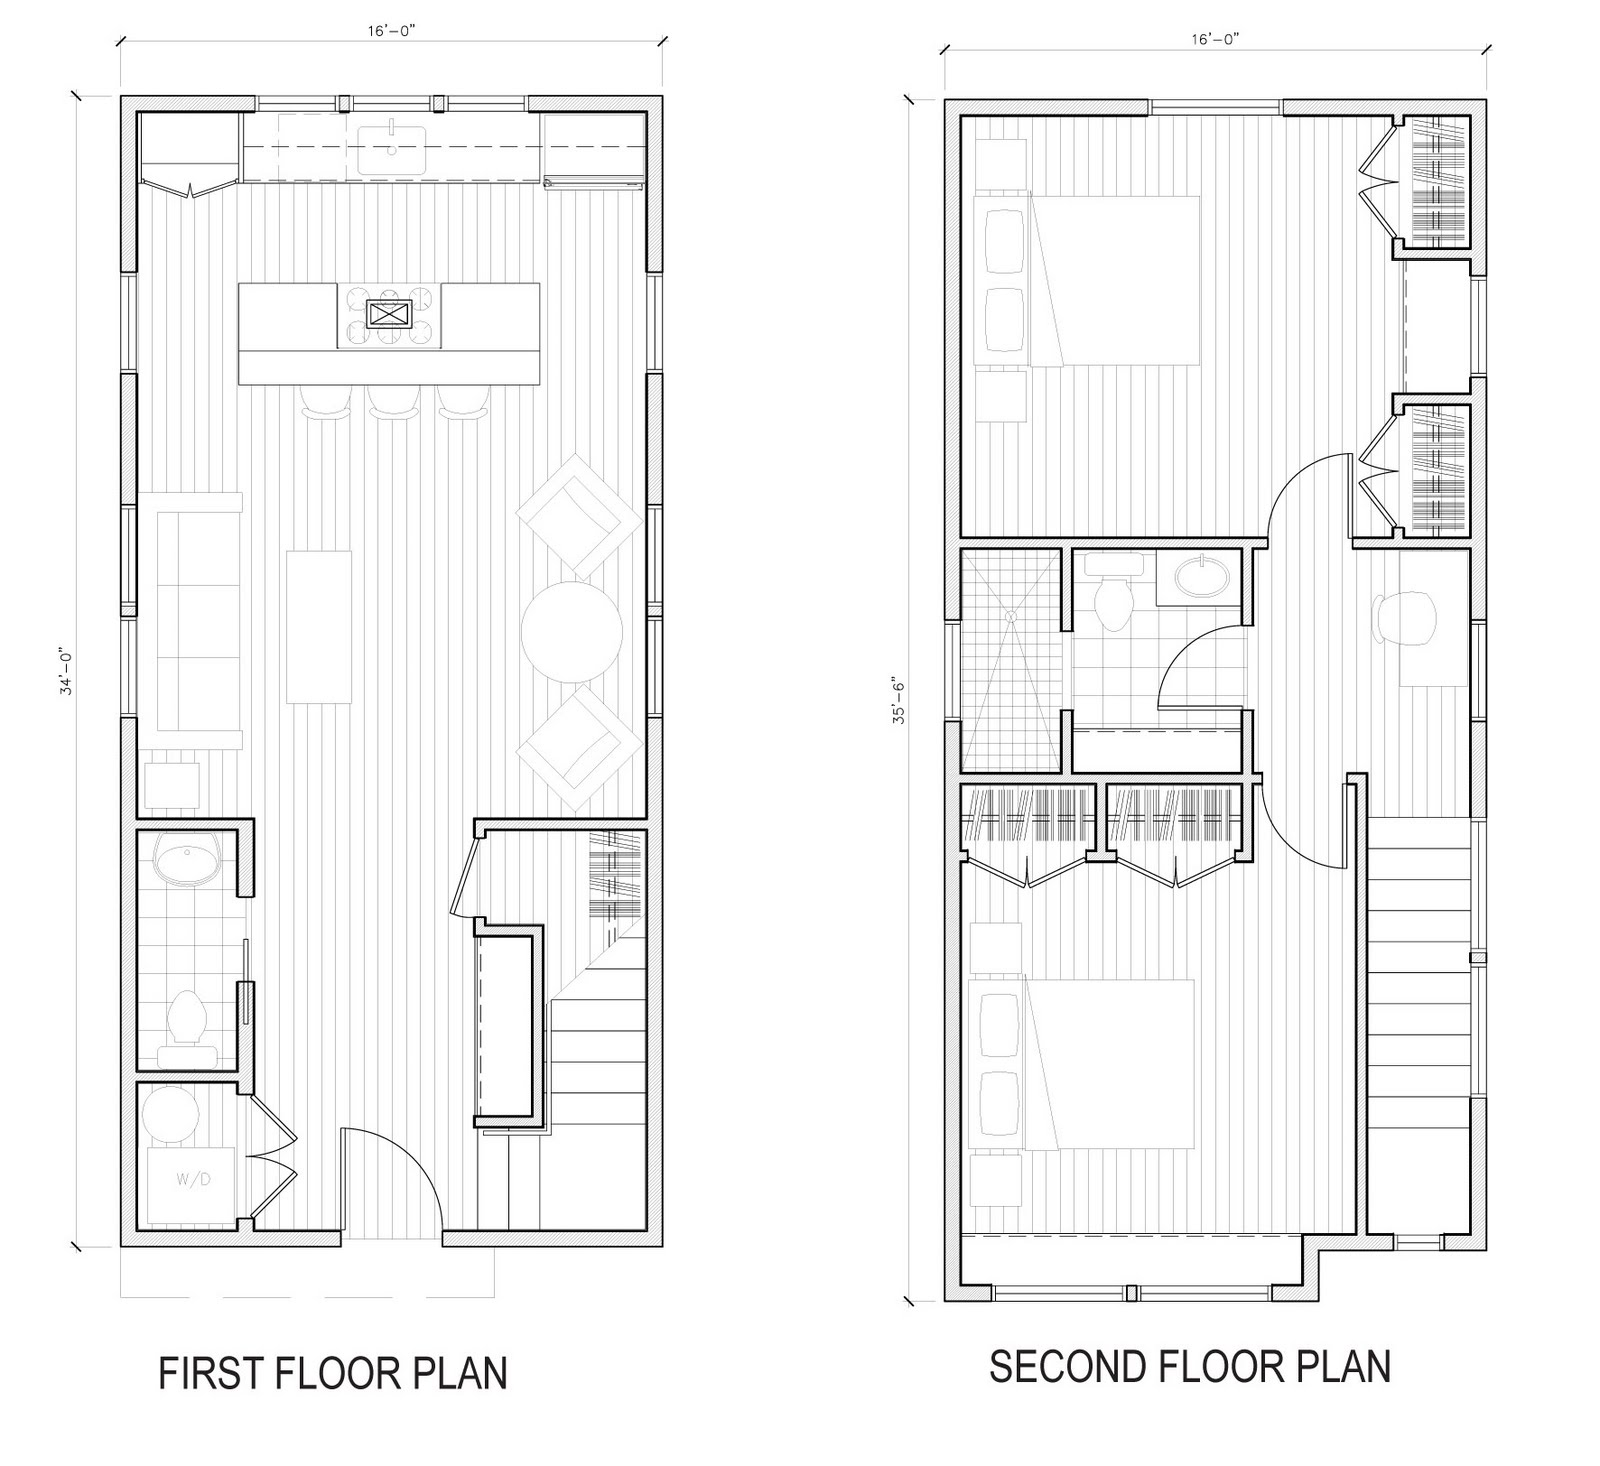 1000 sq ft house plans with loft joy studio design 1000 sq feet house plans